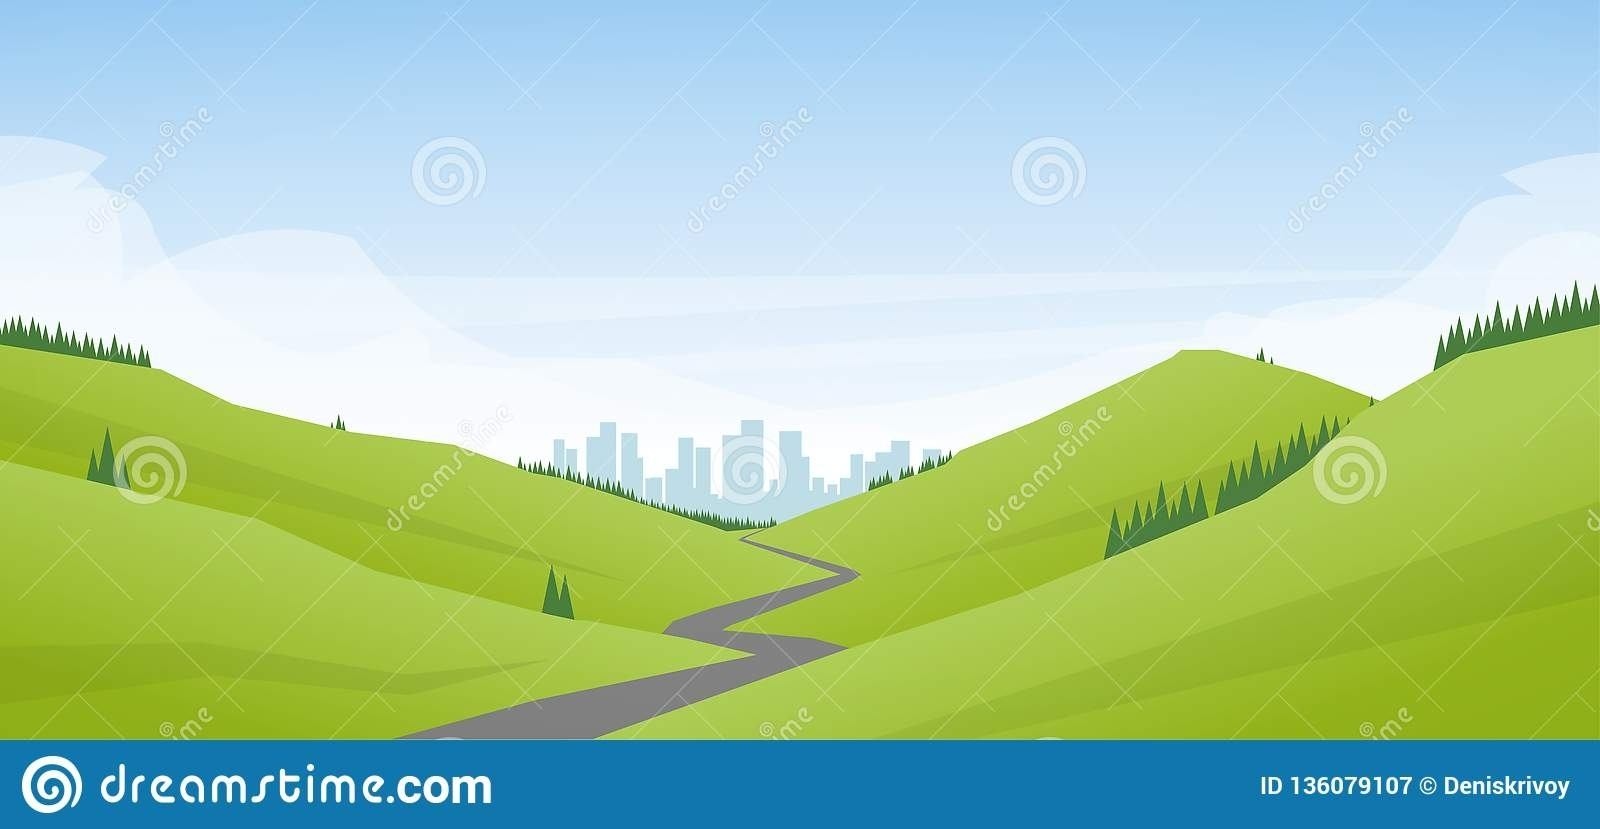 Vector Illustration: Flat Cartoon Landscape With Road intended for Landscape Yard Oakey Flat Road